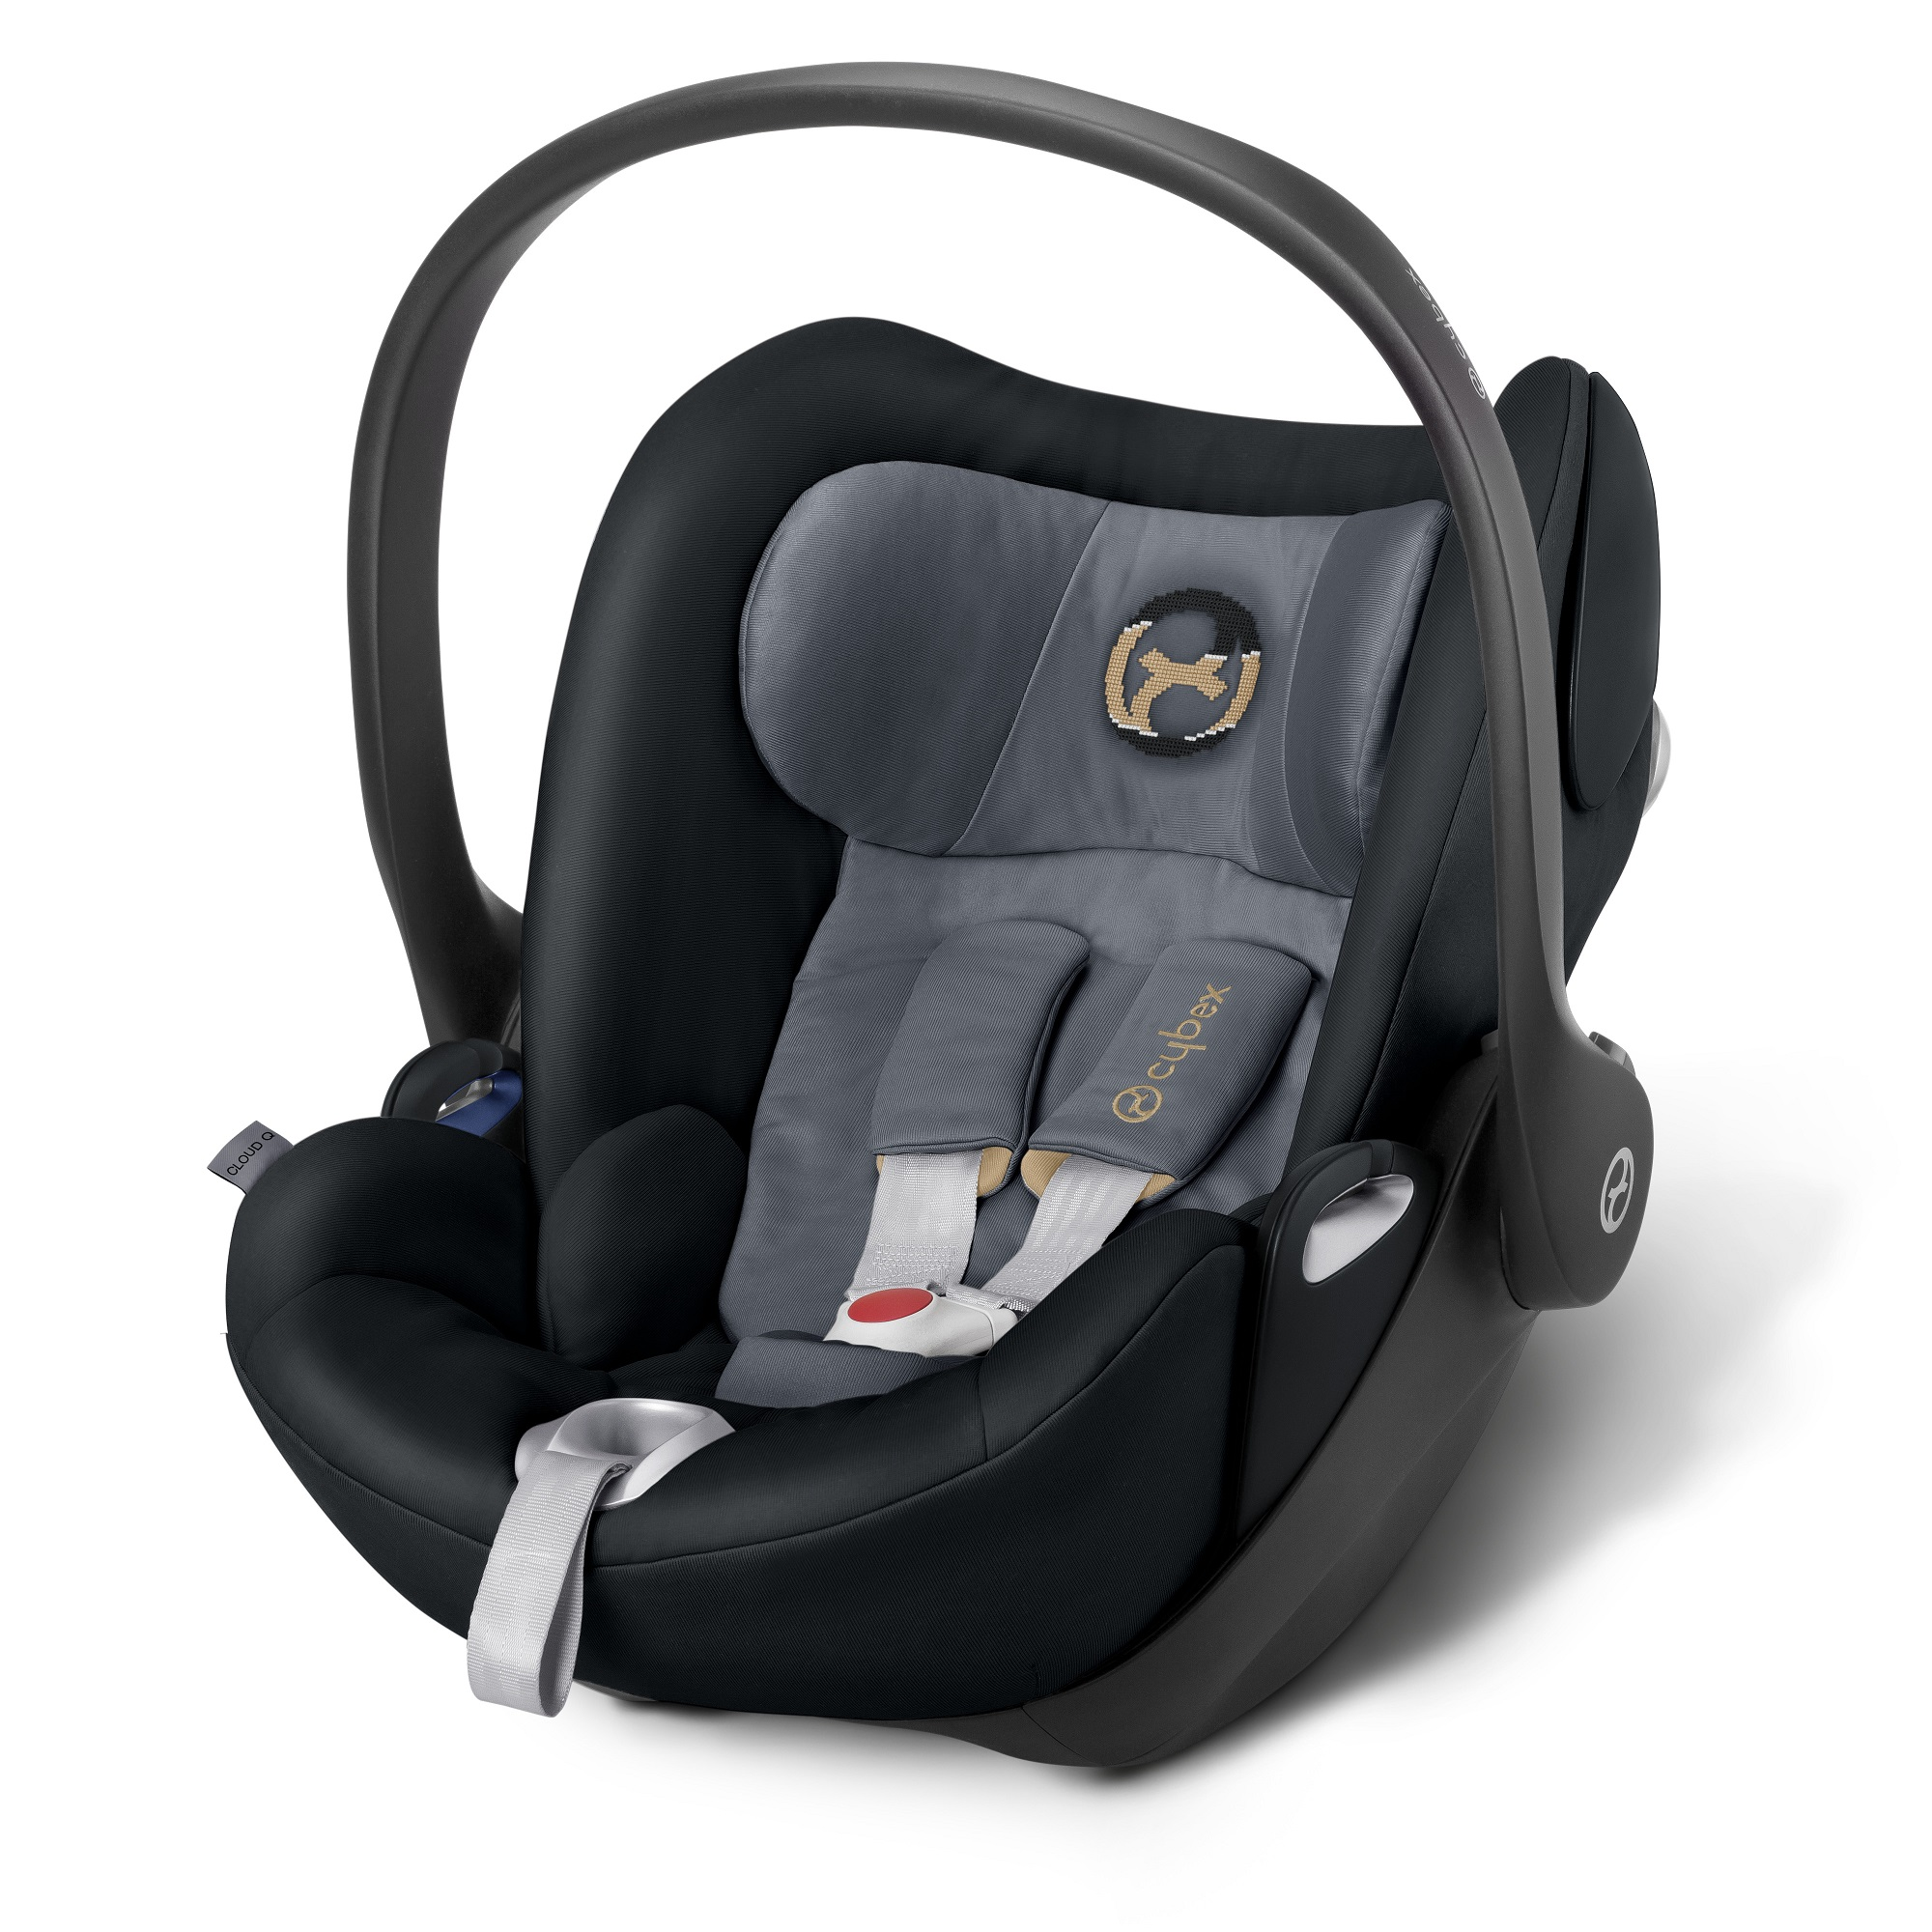 for CYBEX Infant Car Seats Aton and Cloud CYBEX Raincover Transparent